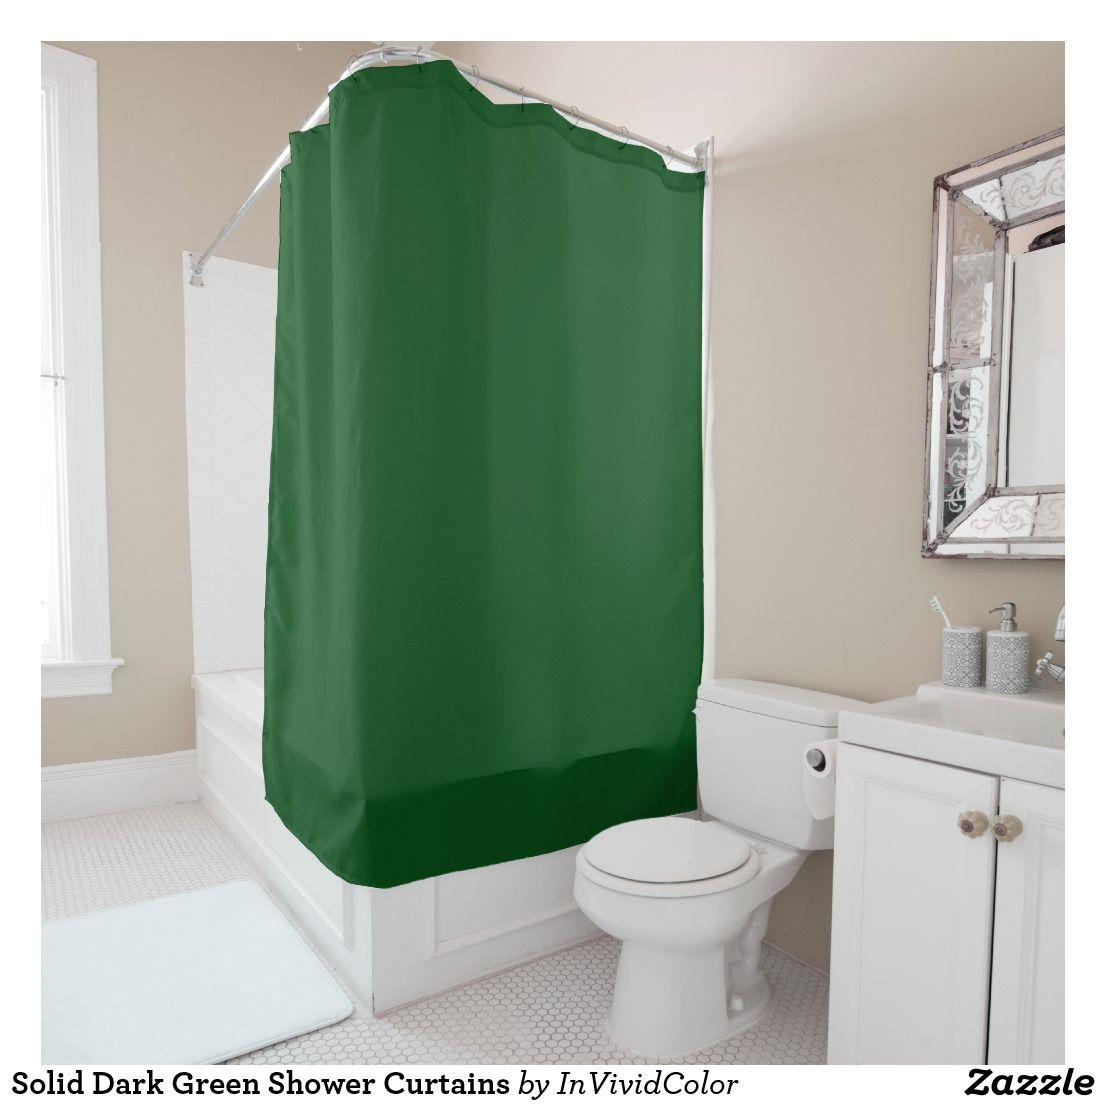 Solid Dark Green Shower Curtains Zazzle Com Green Shower Curtains Blue Shower Curtains Ombre Shower Curtain